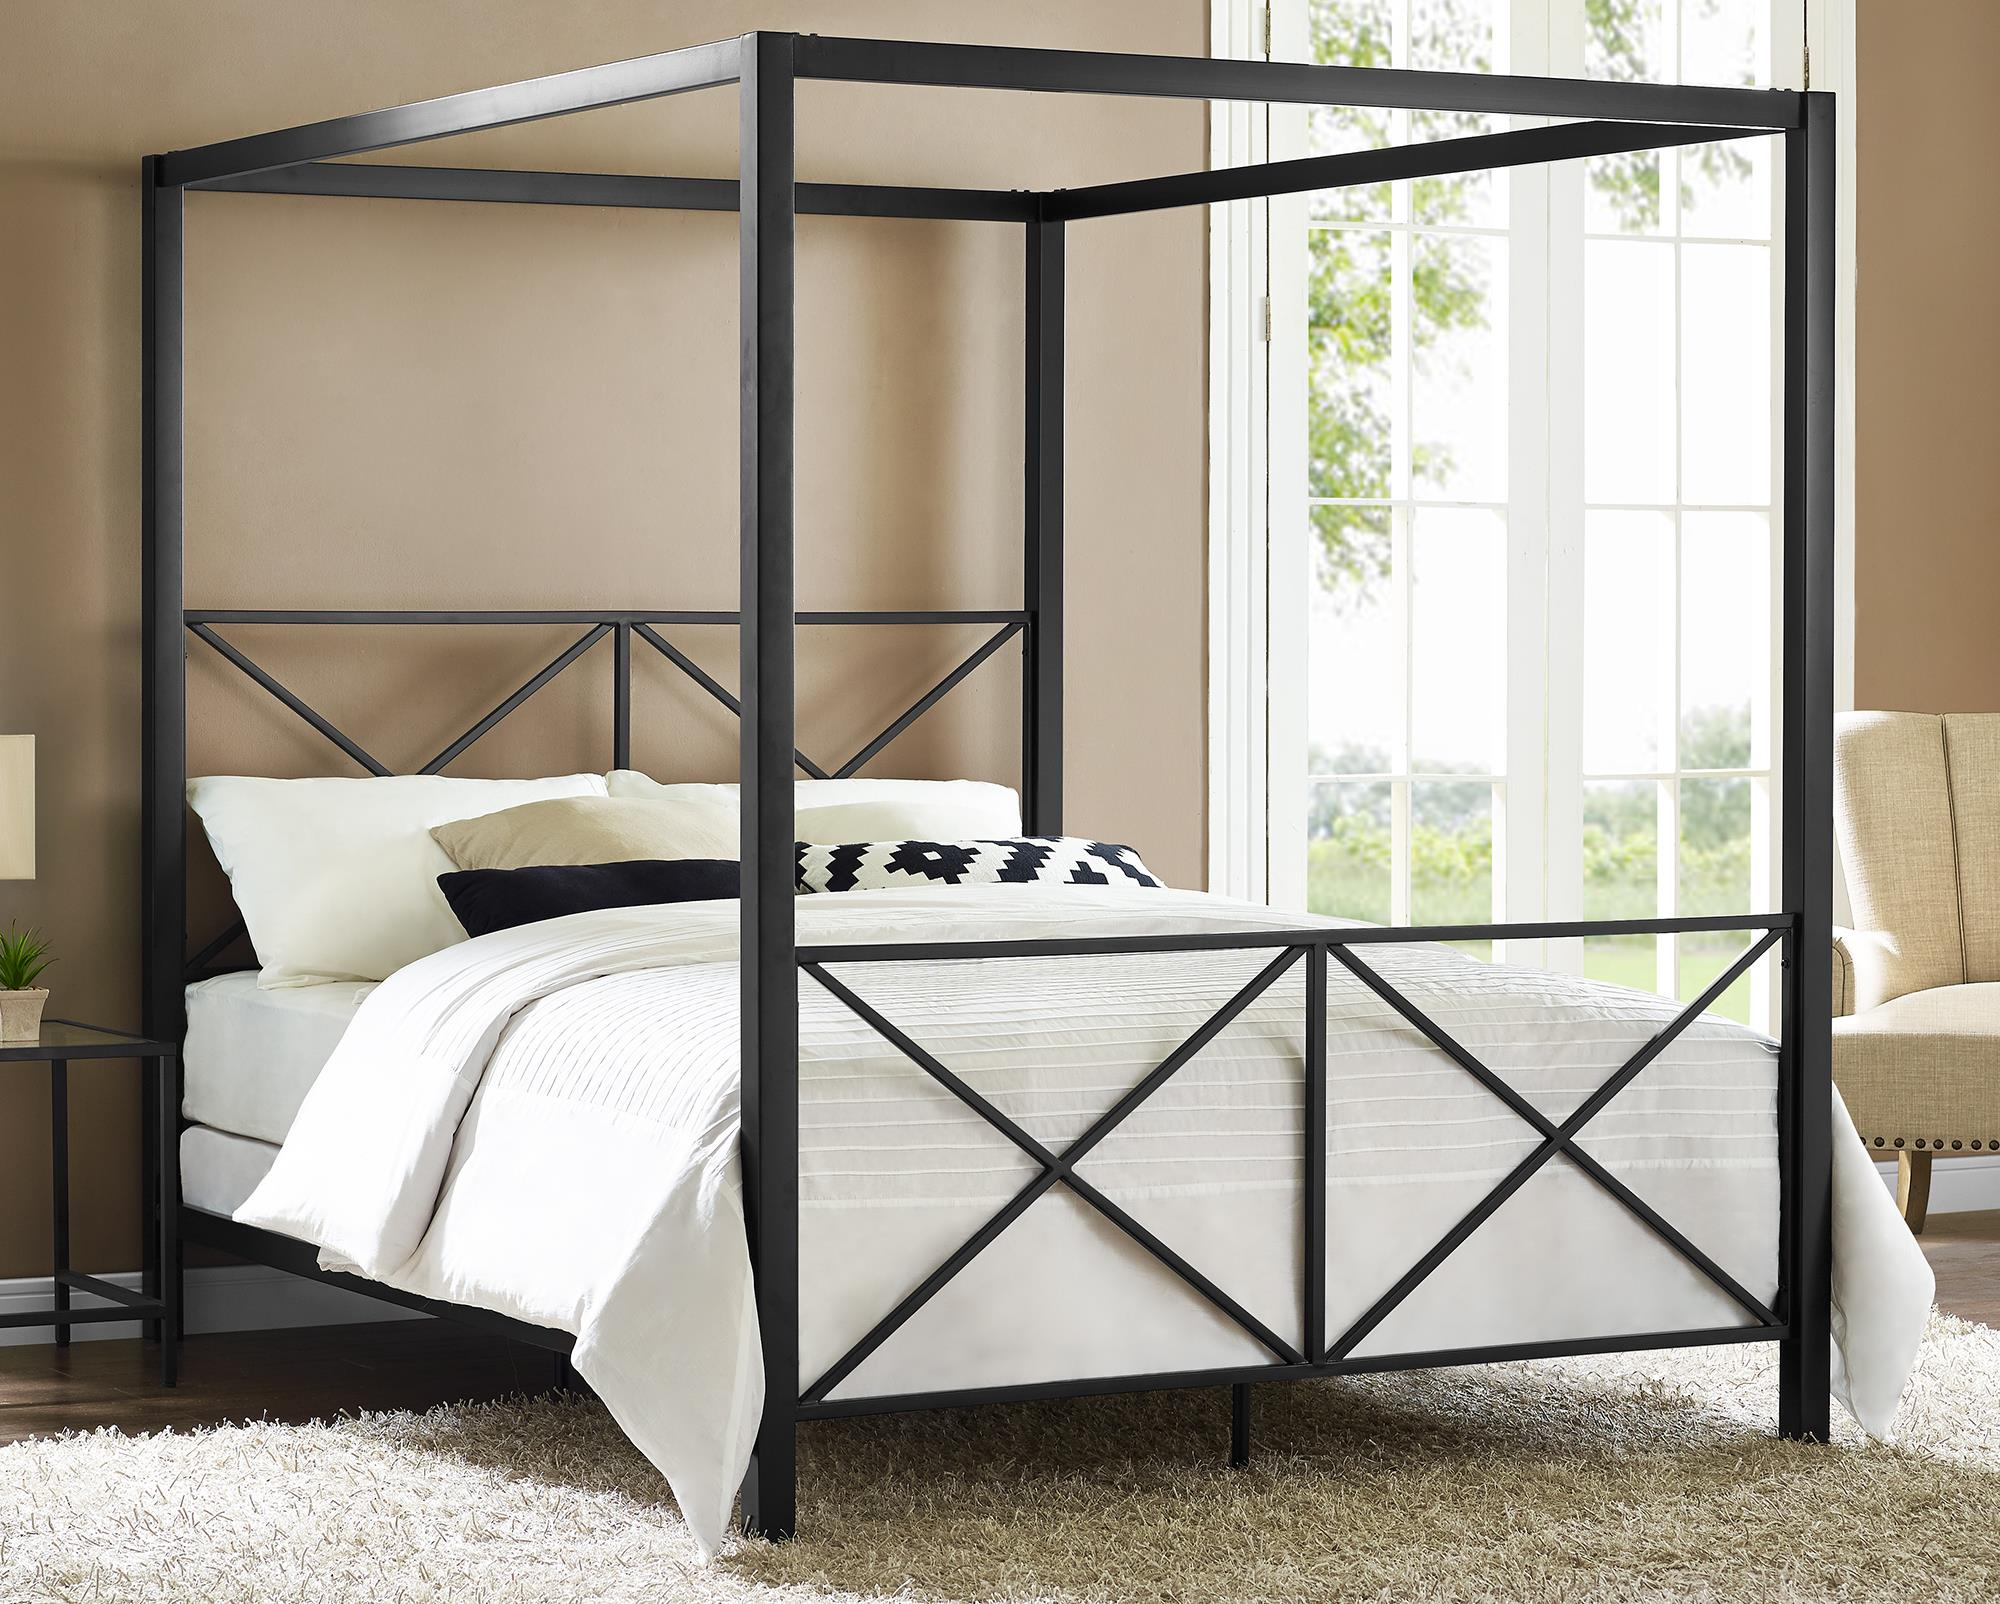 Image of: Canopy Bed Frame King